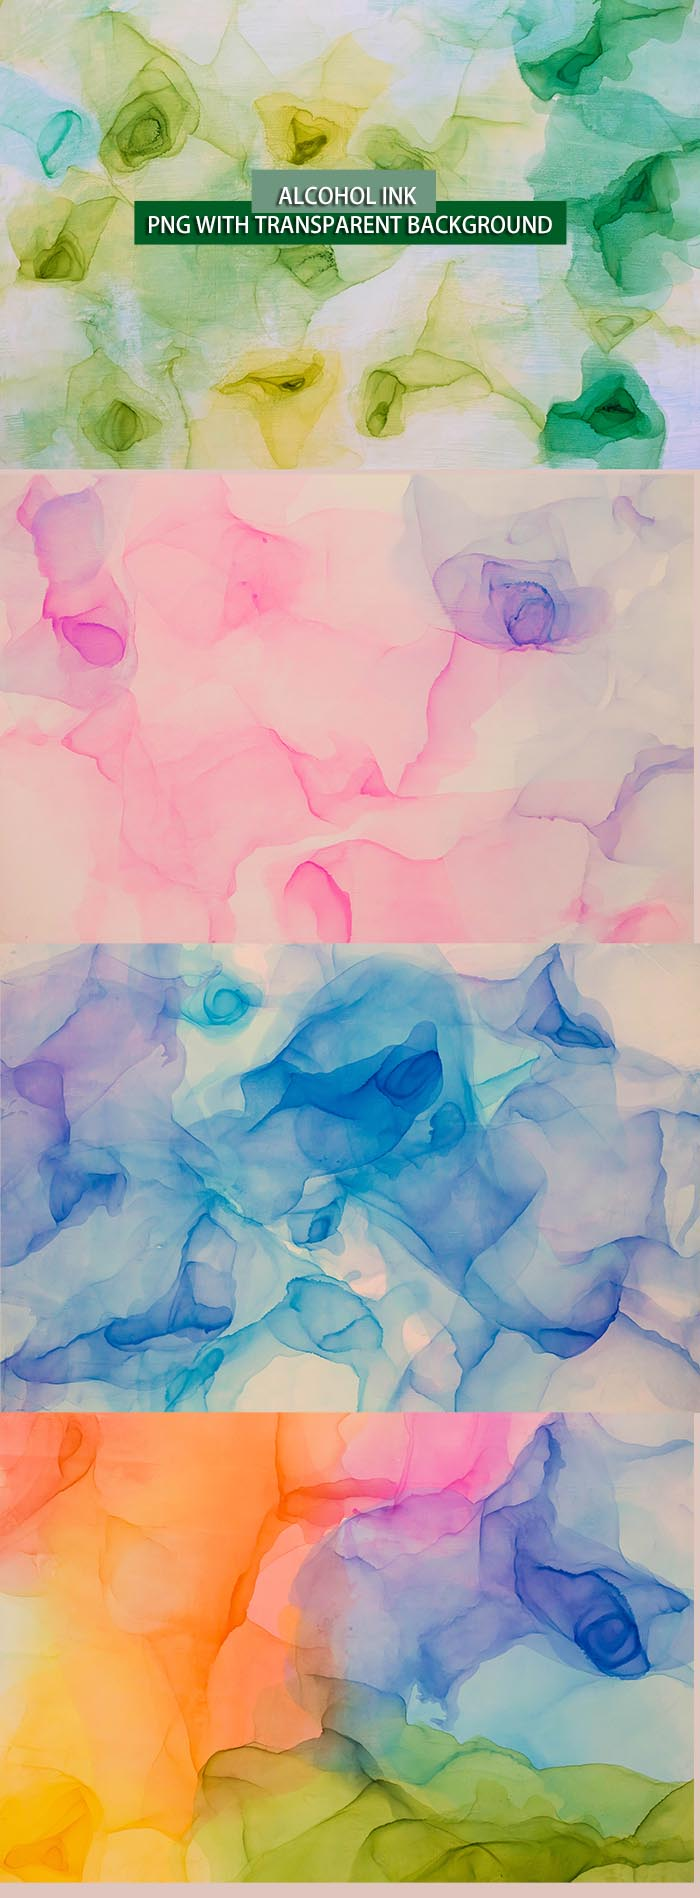 Galaxy Colors Collection: 1604 Elements - $29 ONLY - pinalk 1